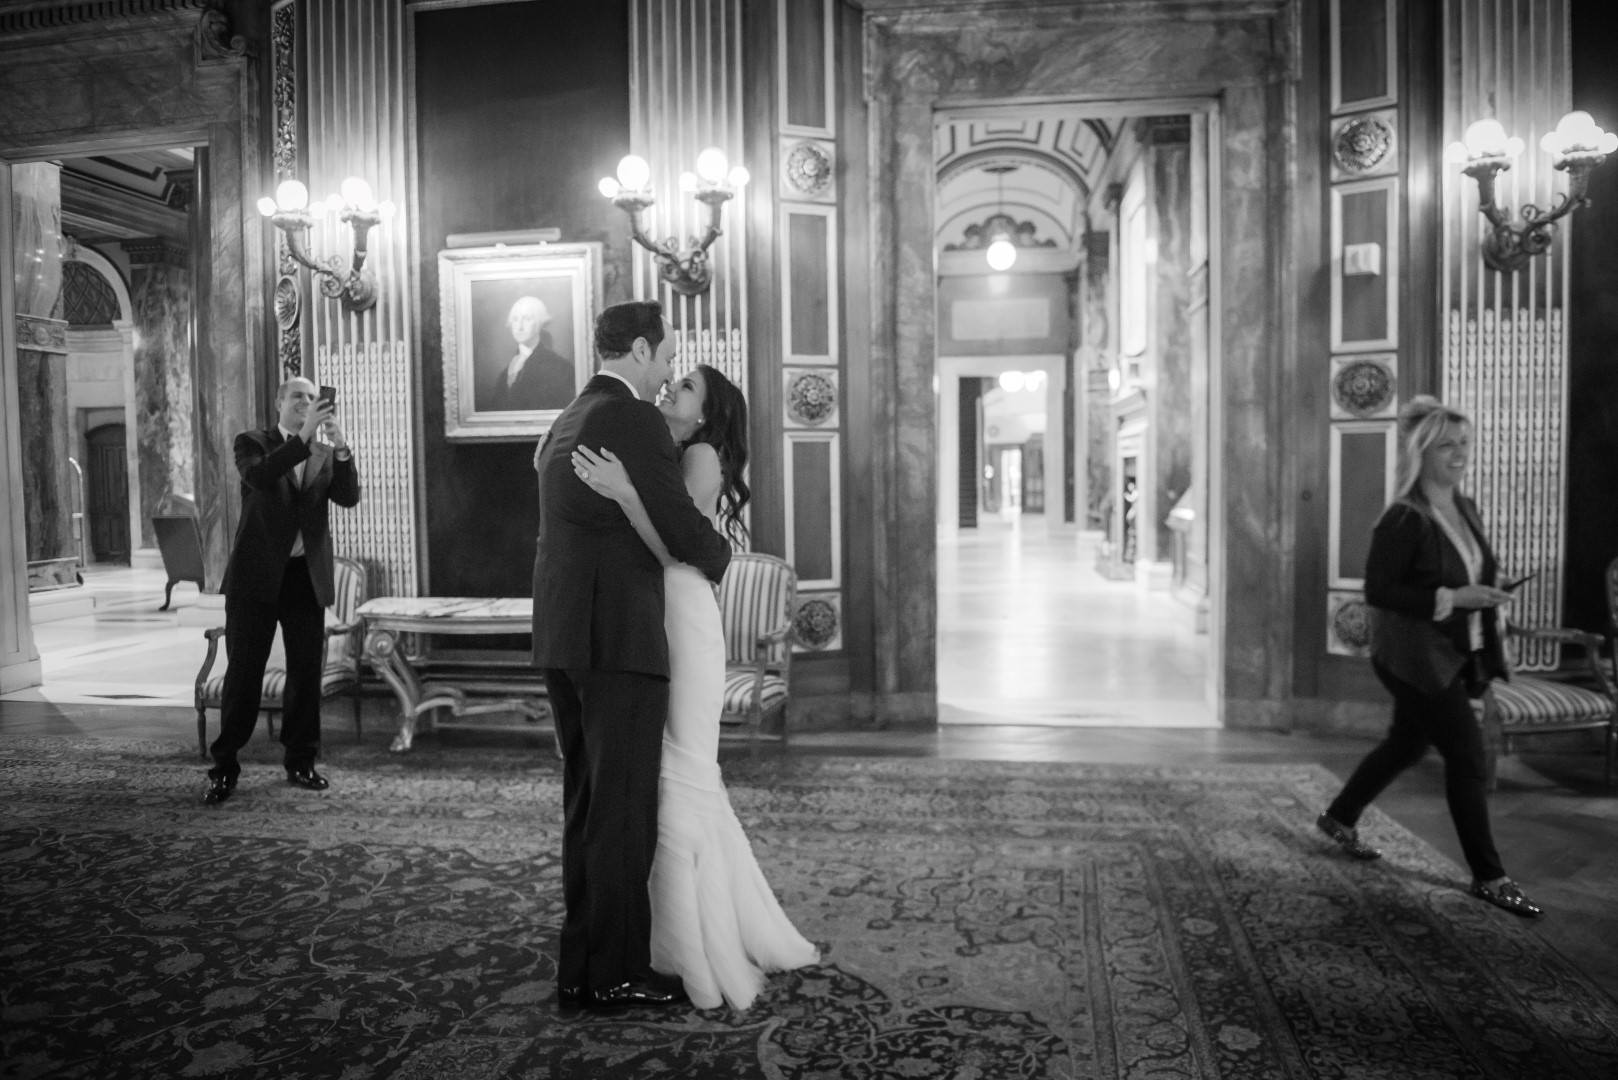 new york city wedding photography photographer photo groom bride first look emotional kiss black and white bw